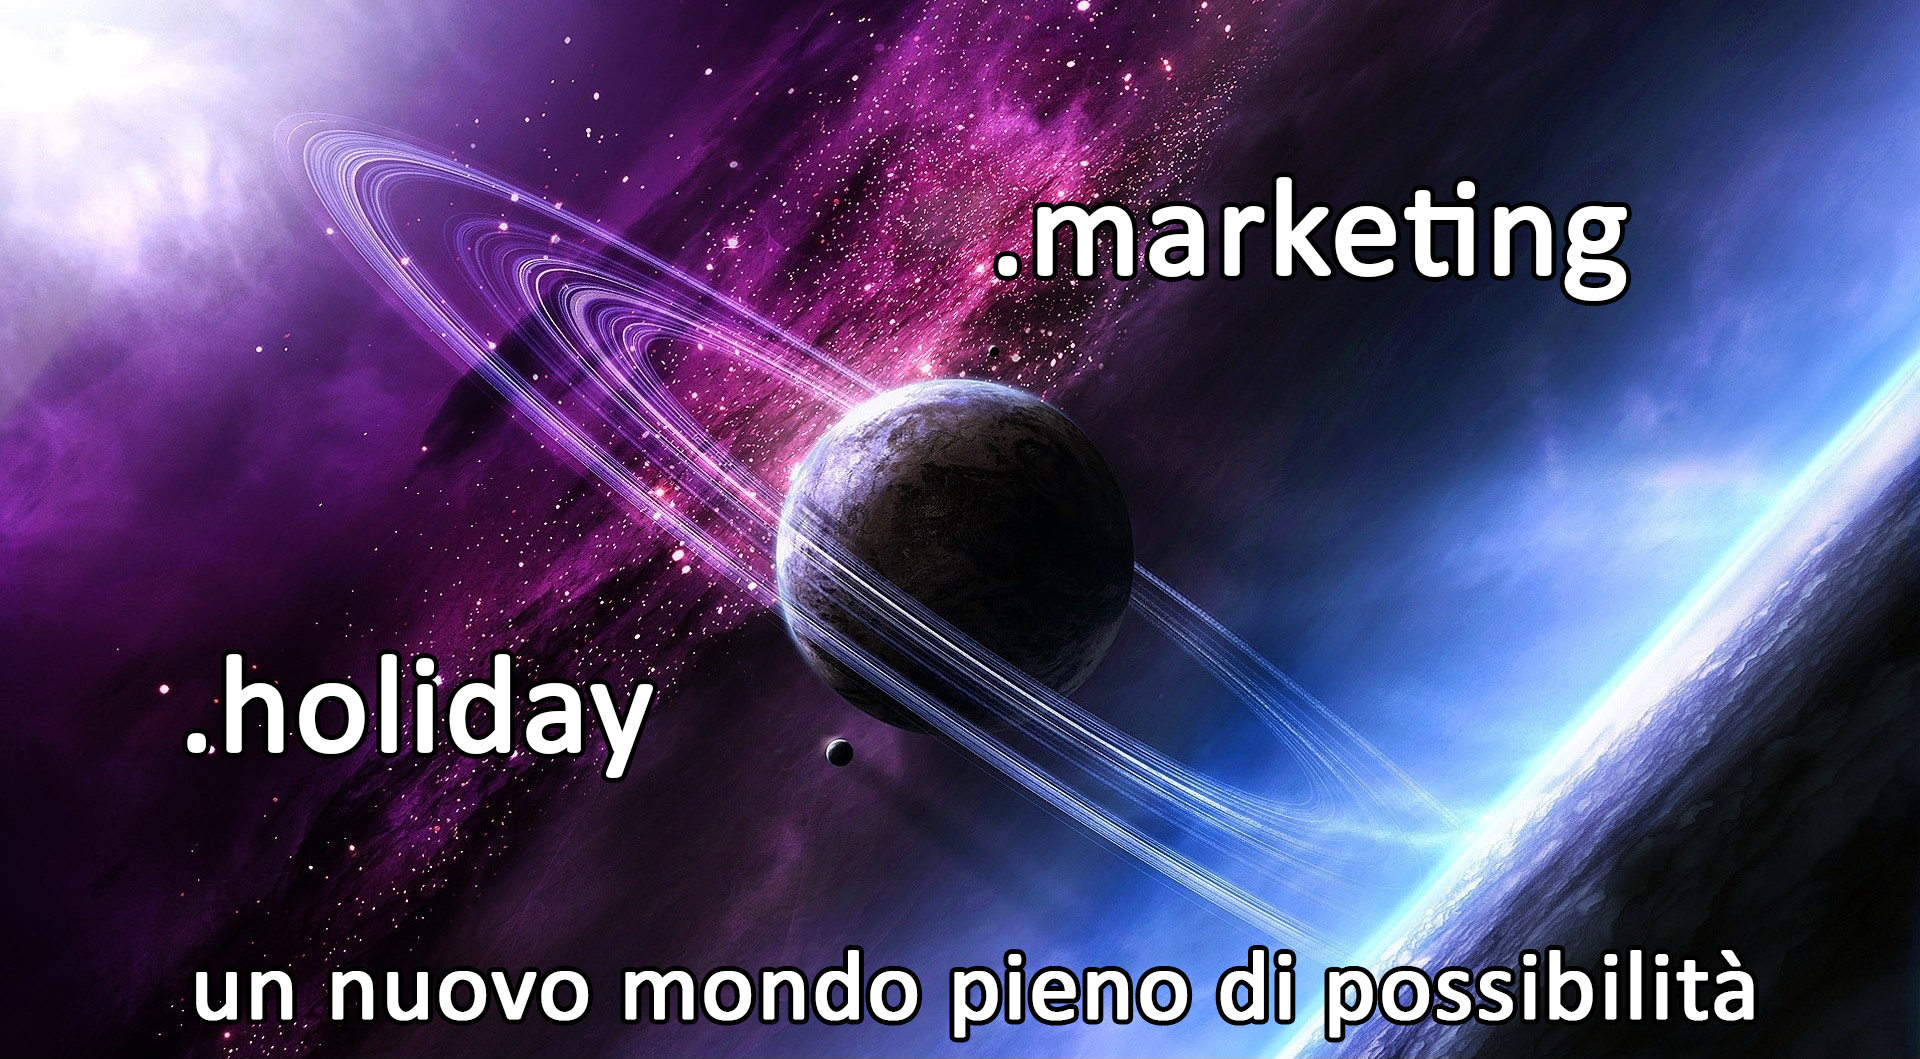 Registrazione .marketing registrazione .holiday